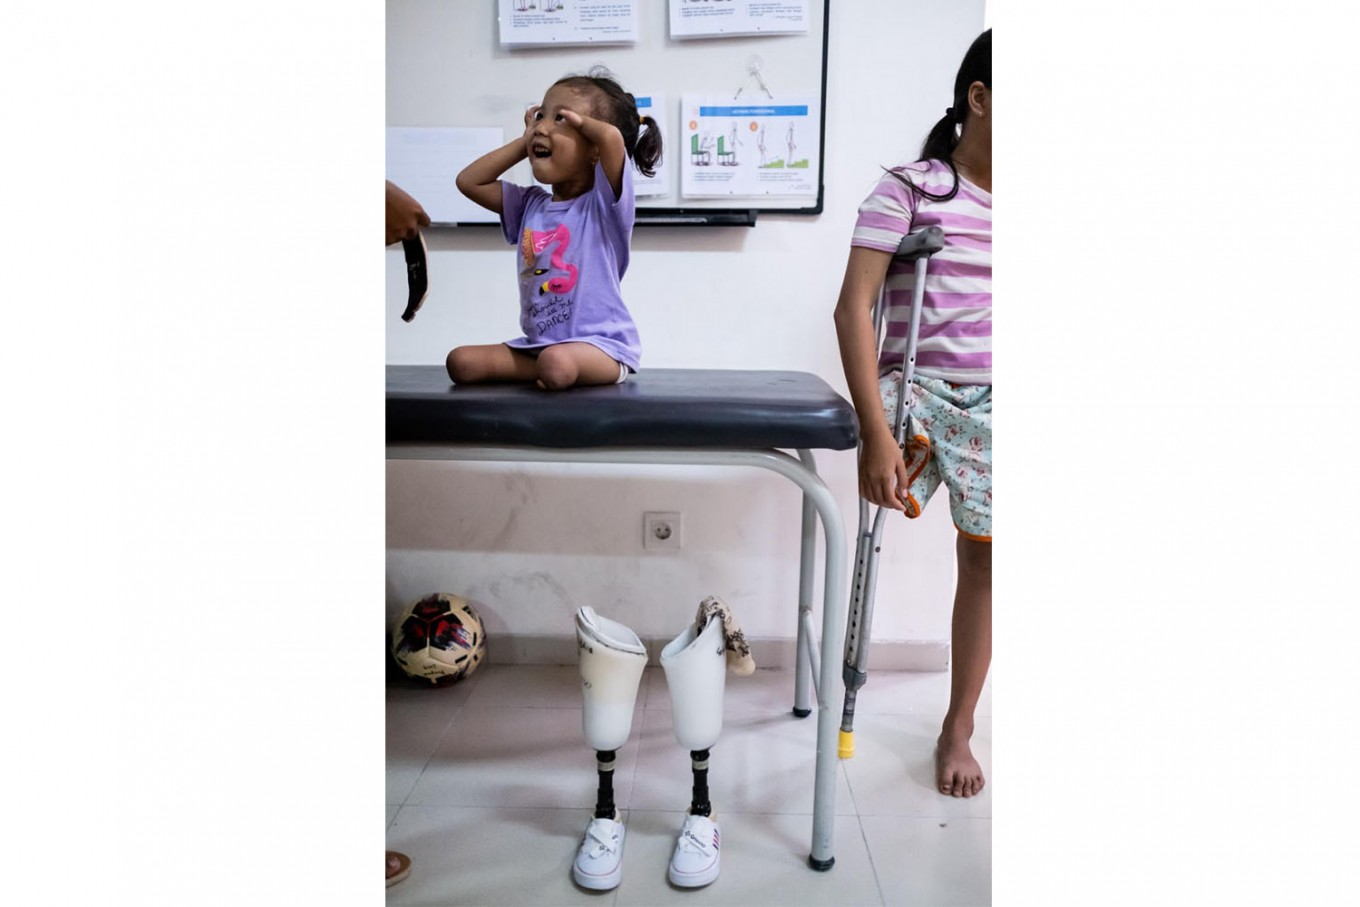 Safitri smiles after practicing to walk with her prosthetic legs. JP/Agung Parameswara